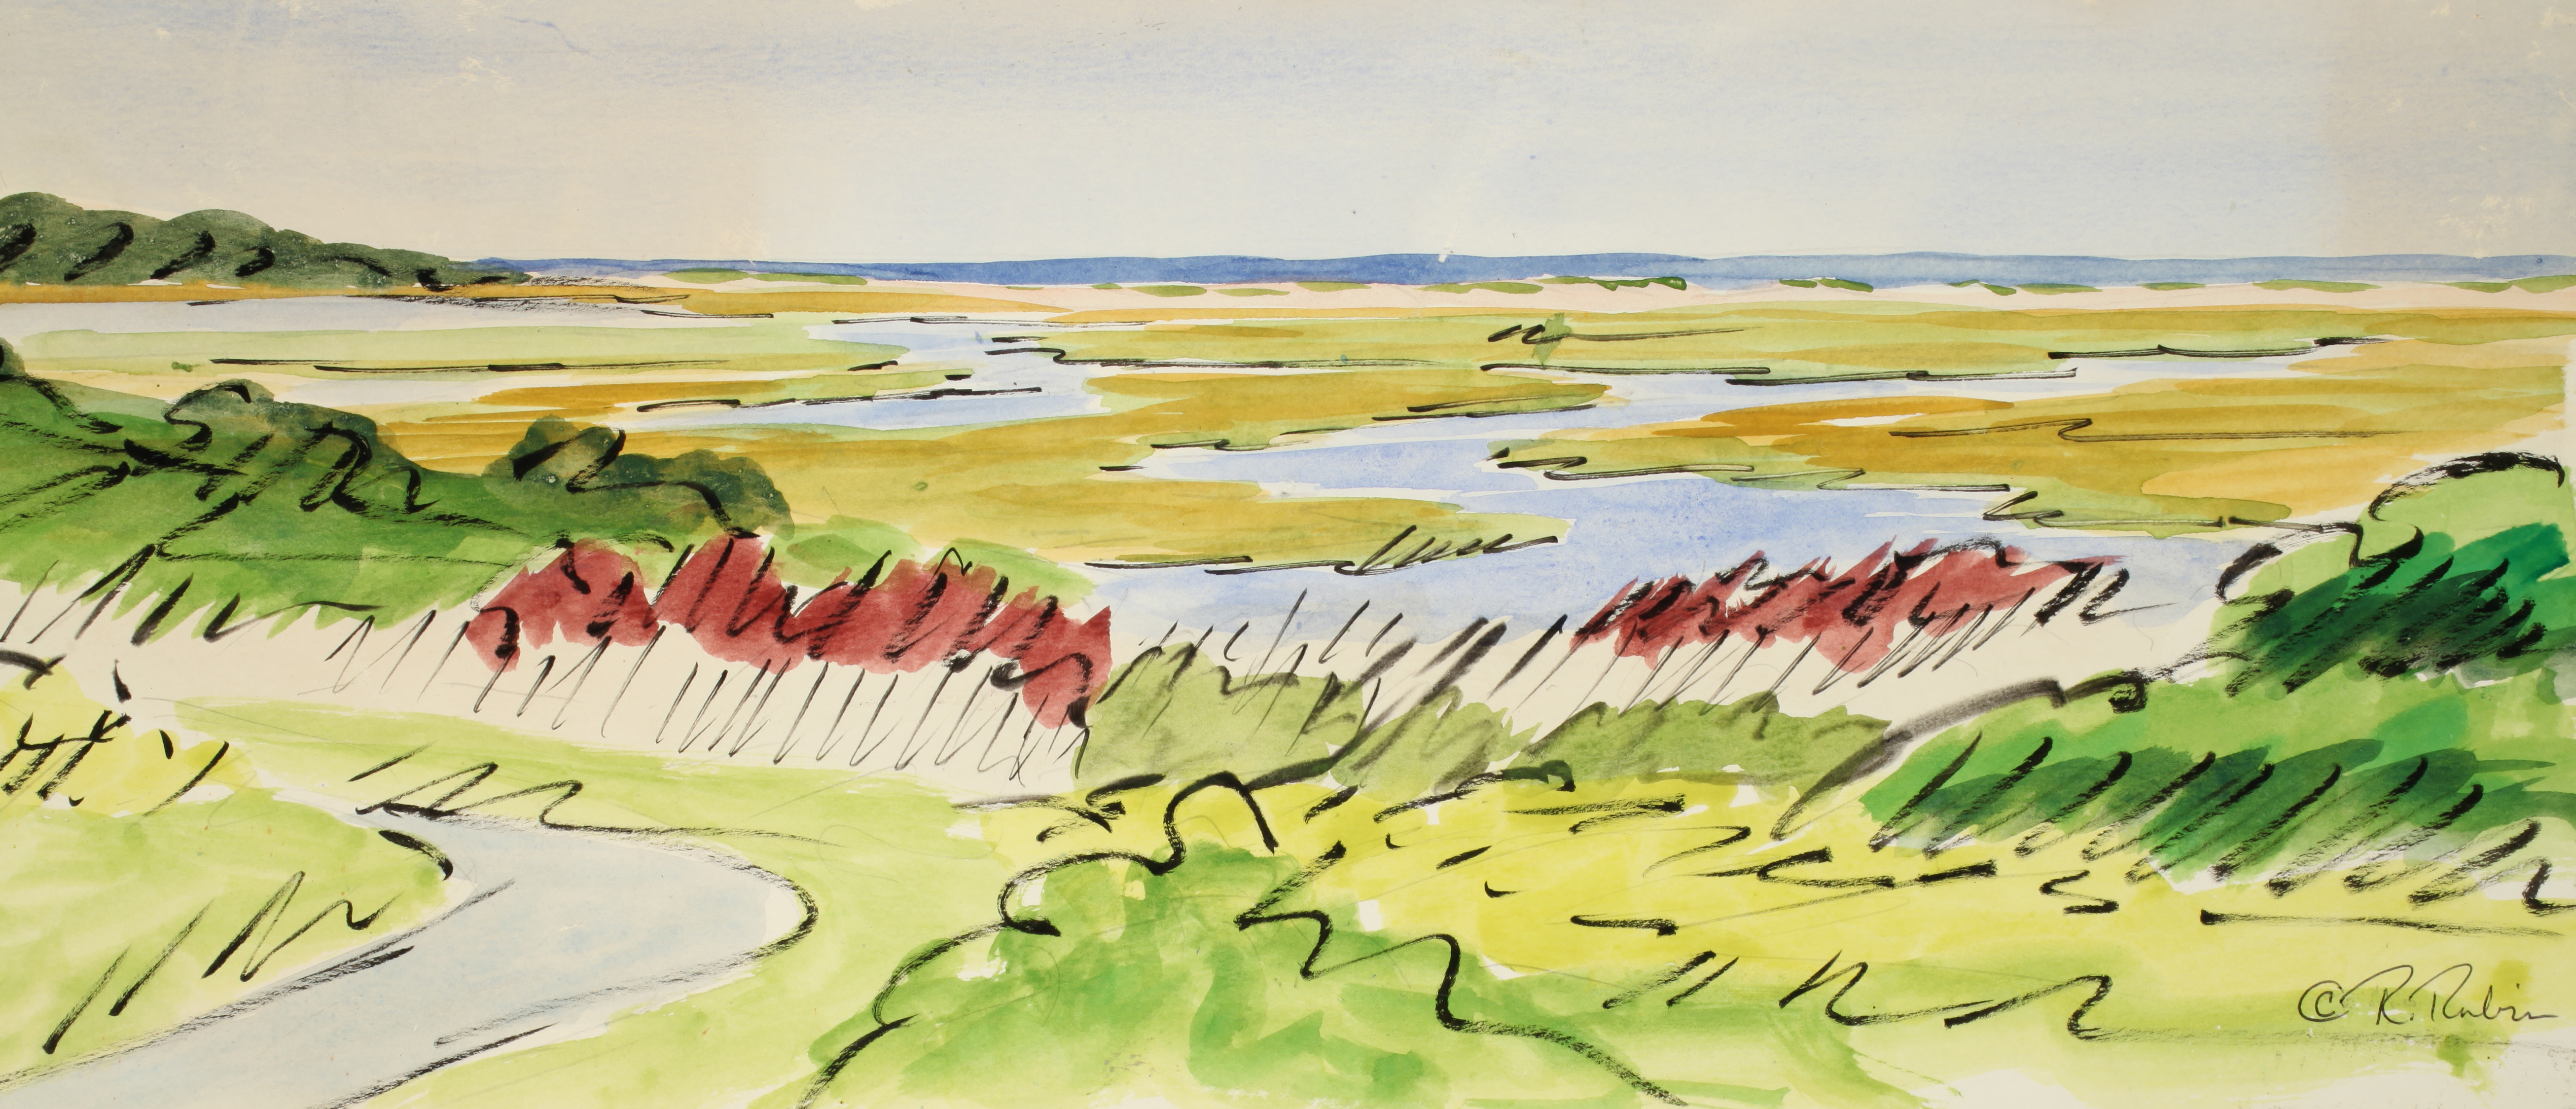 renee-rubin-the-marshes-are-green